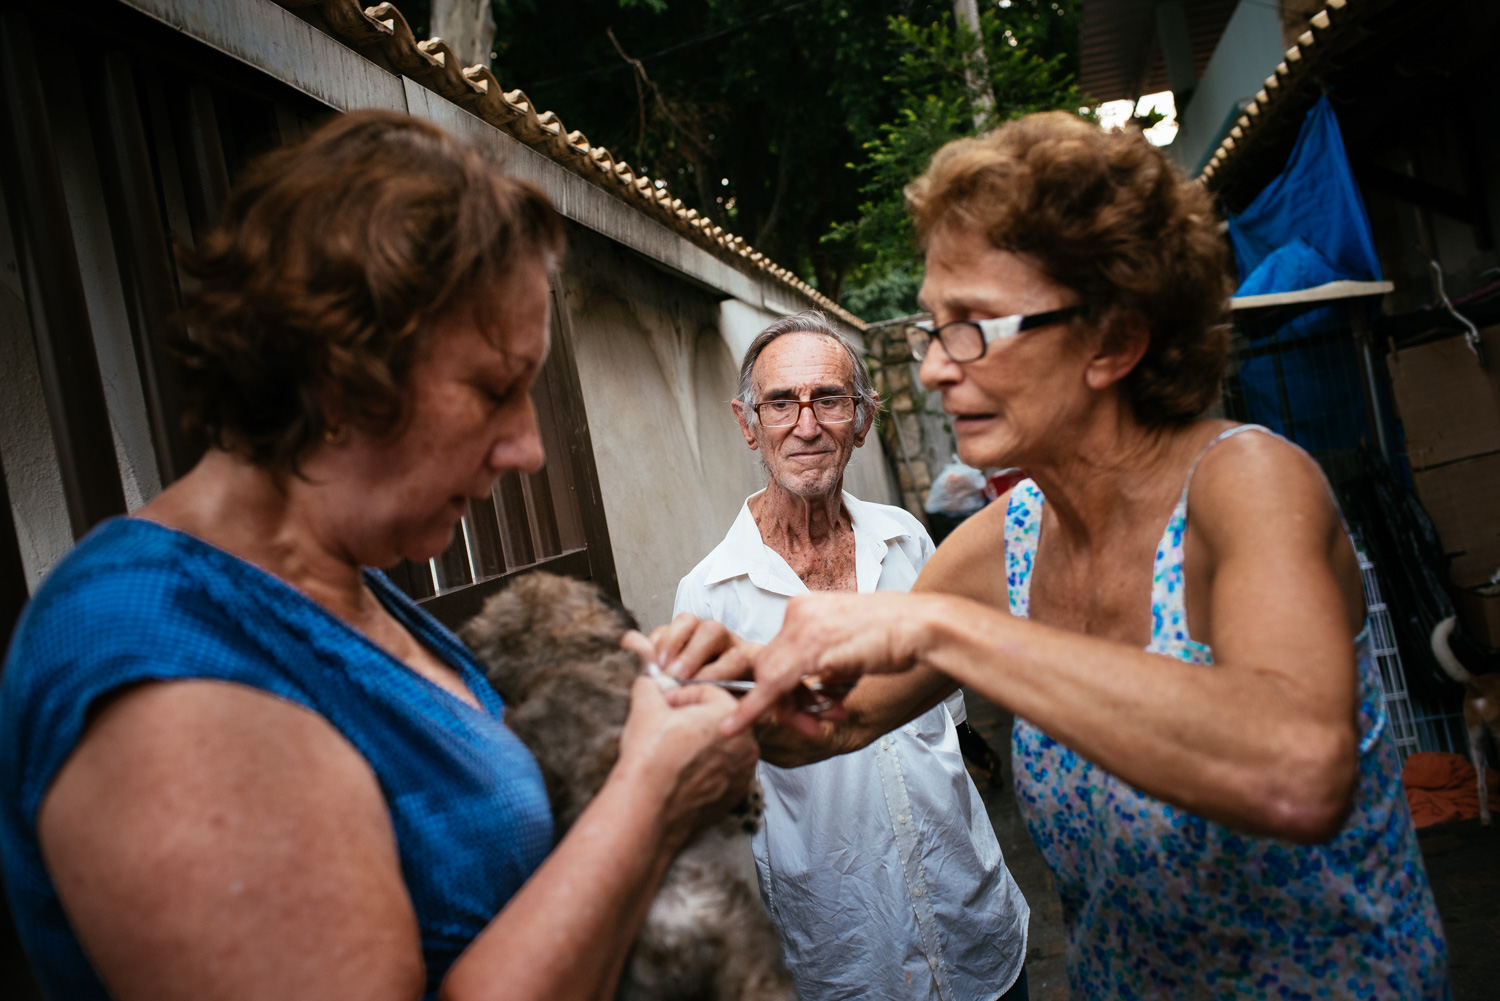 Euracy Aguiar Prado, 80, (center) looks on as his wife, Edina Ferreira Prado, 70, picks off a tick from a puppy that is about to be adopted. Rio de Janeiro, Brazil, 03-15-2015.